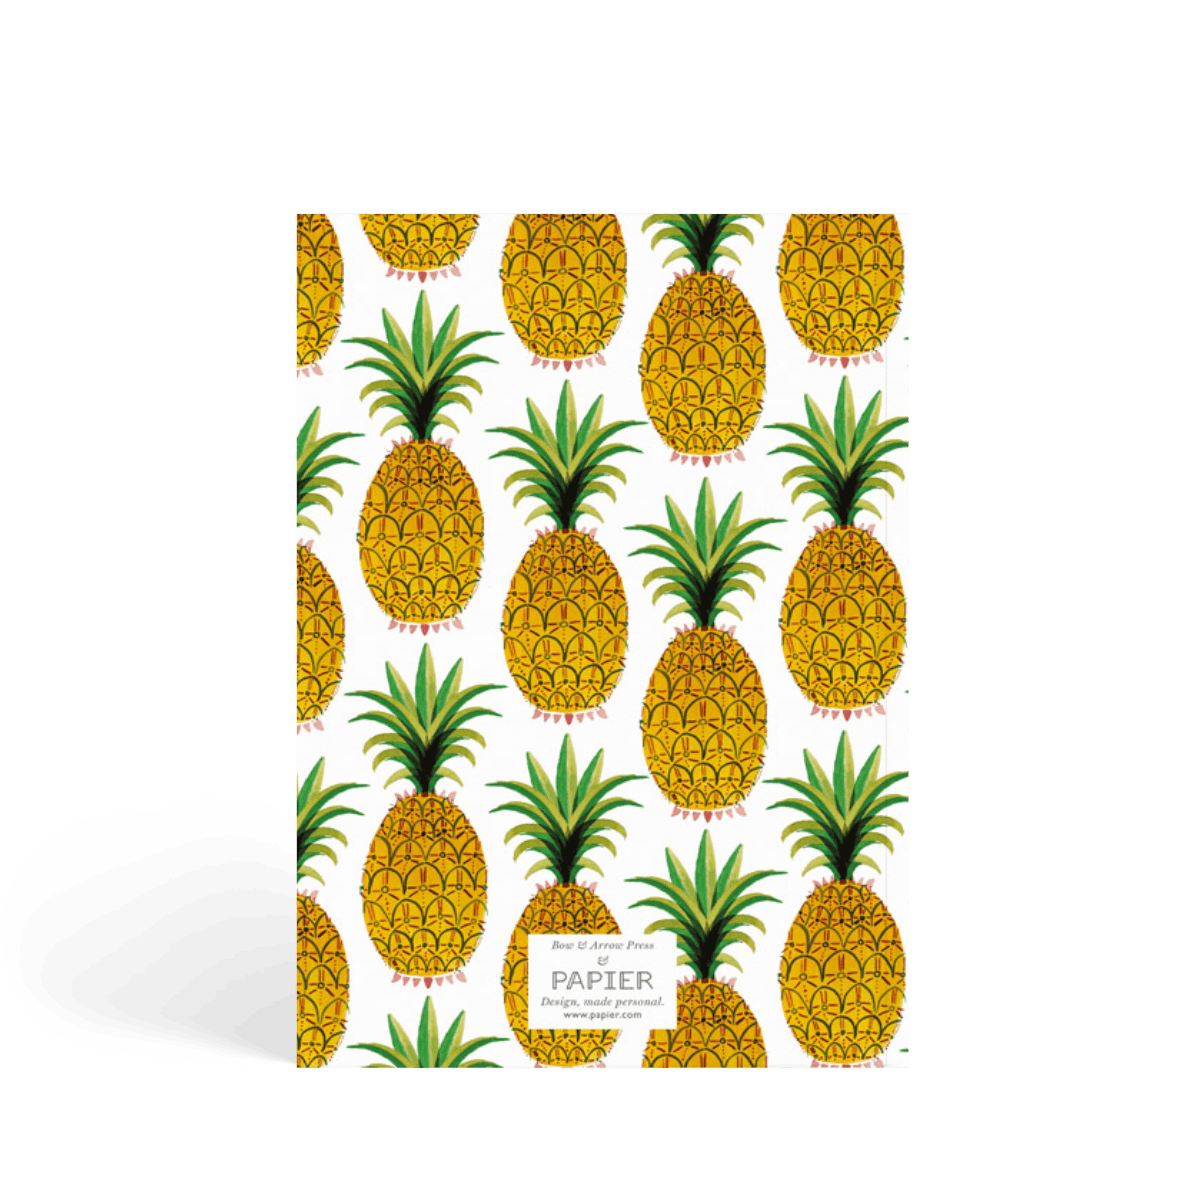 Https%3a%2f%2fwww.papier.com%2fproduct image%2f56569%2f5%2fpineapple 13584 back 1542369909.png?ixlib=rb 1.1